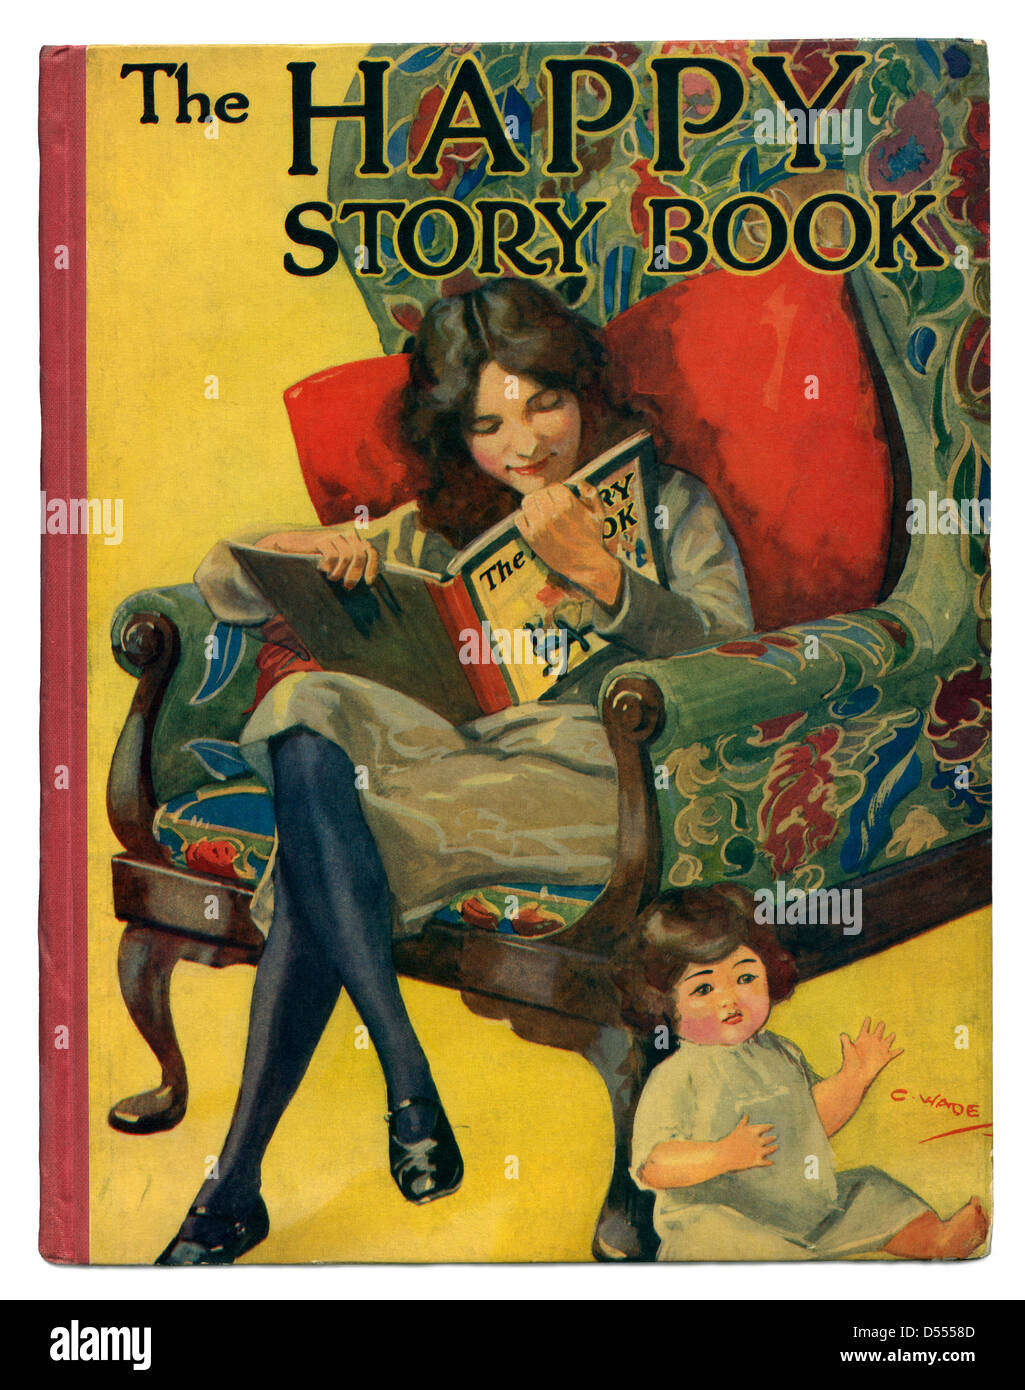 The Happy Story Book featured a girl reading the self-same book on the cover. - a vintage cover c. 1930 - Stock Image